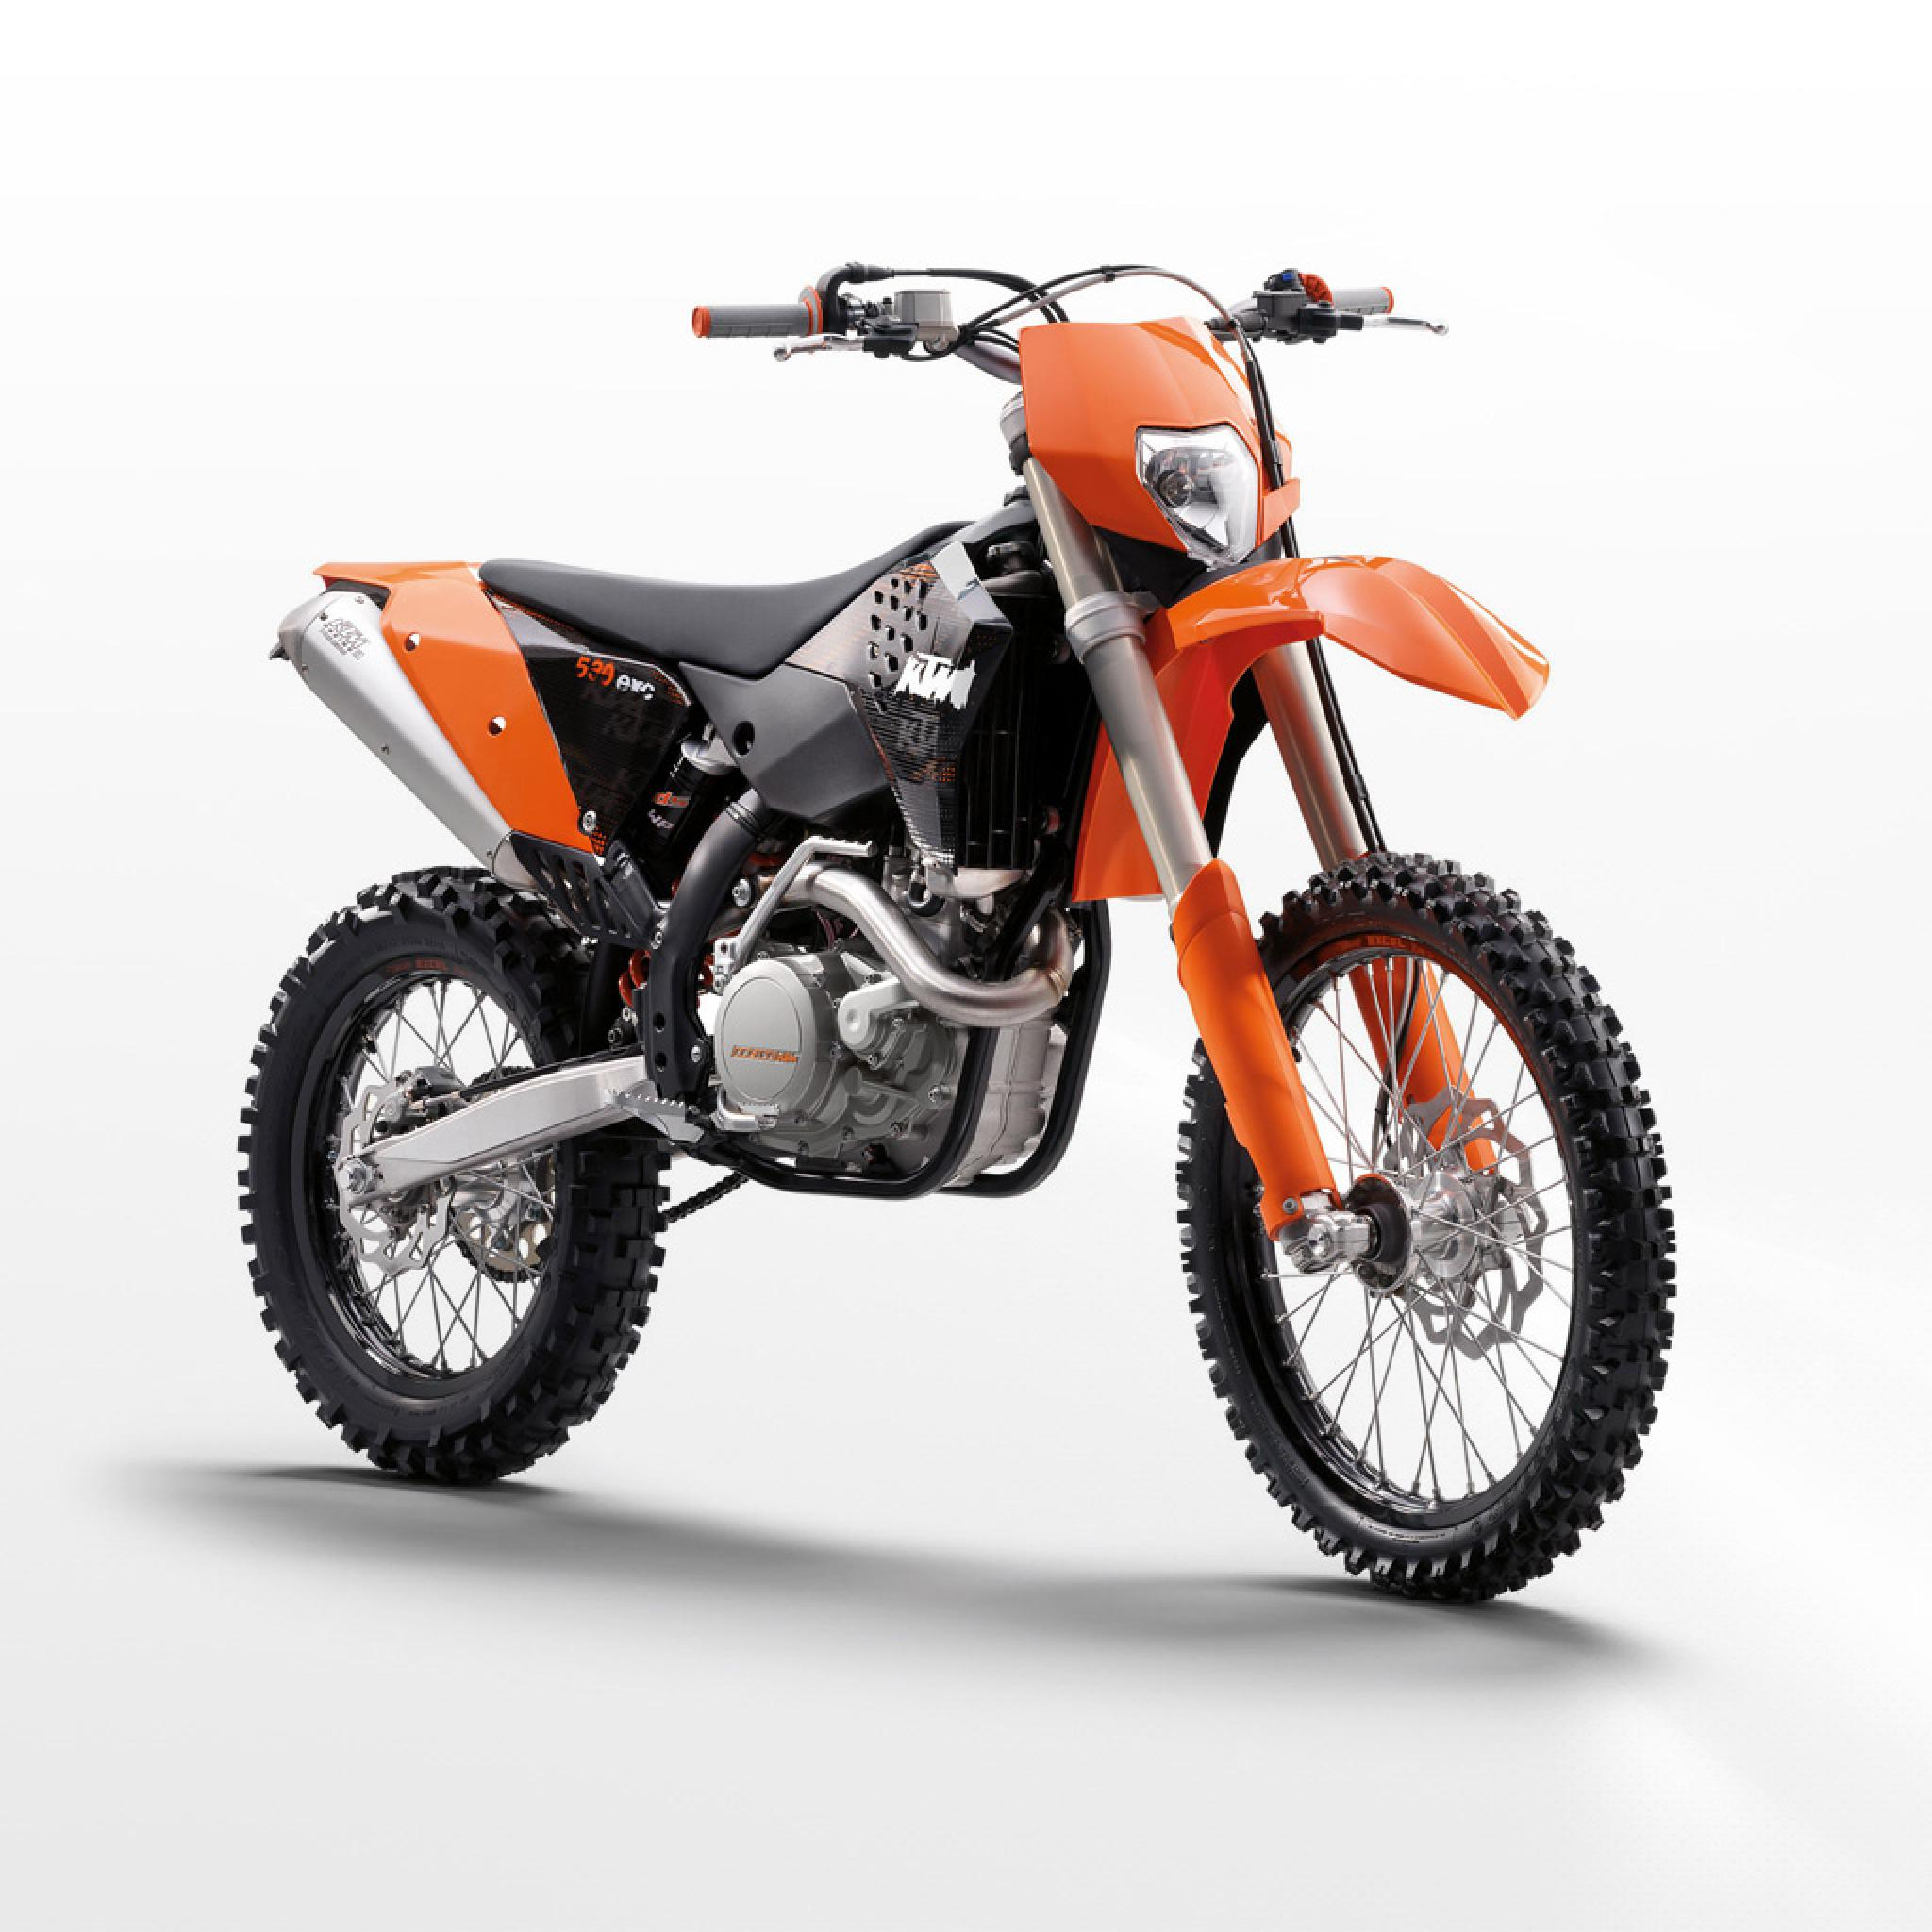 Ktm motorcycles hd wallpapers free wallaper downloads ktm sport - Desktop Images Of 2015 Cars 3d Hd Pictures